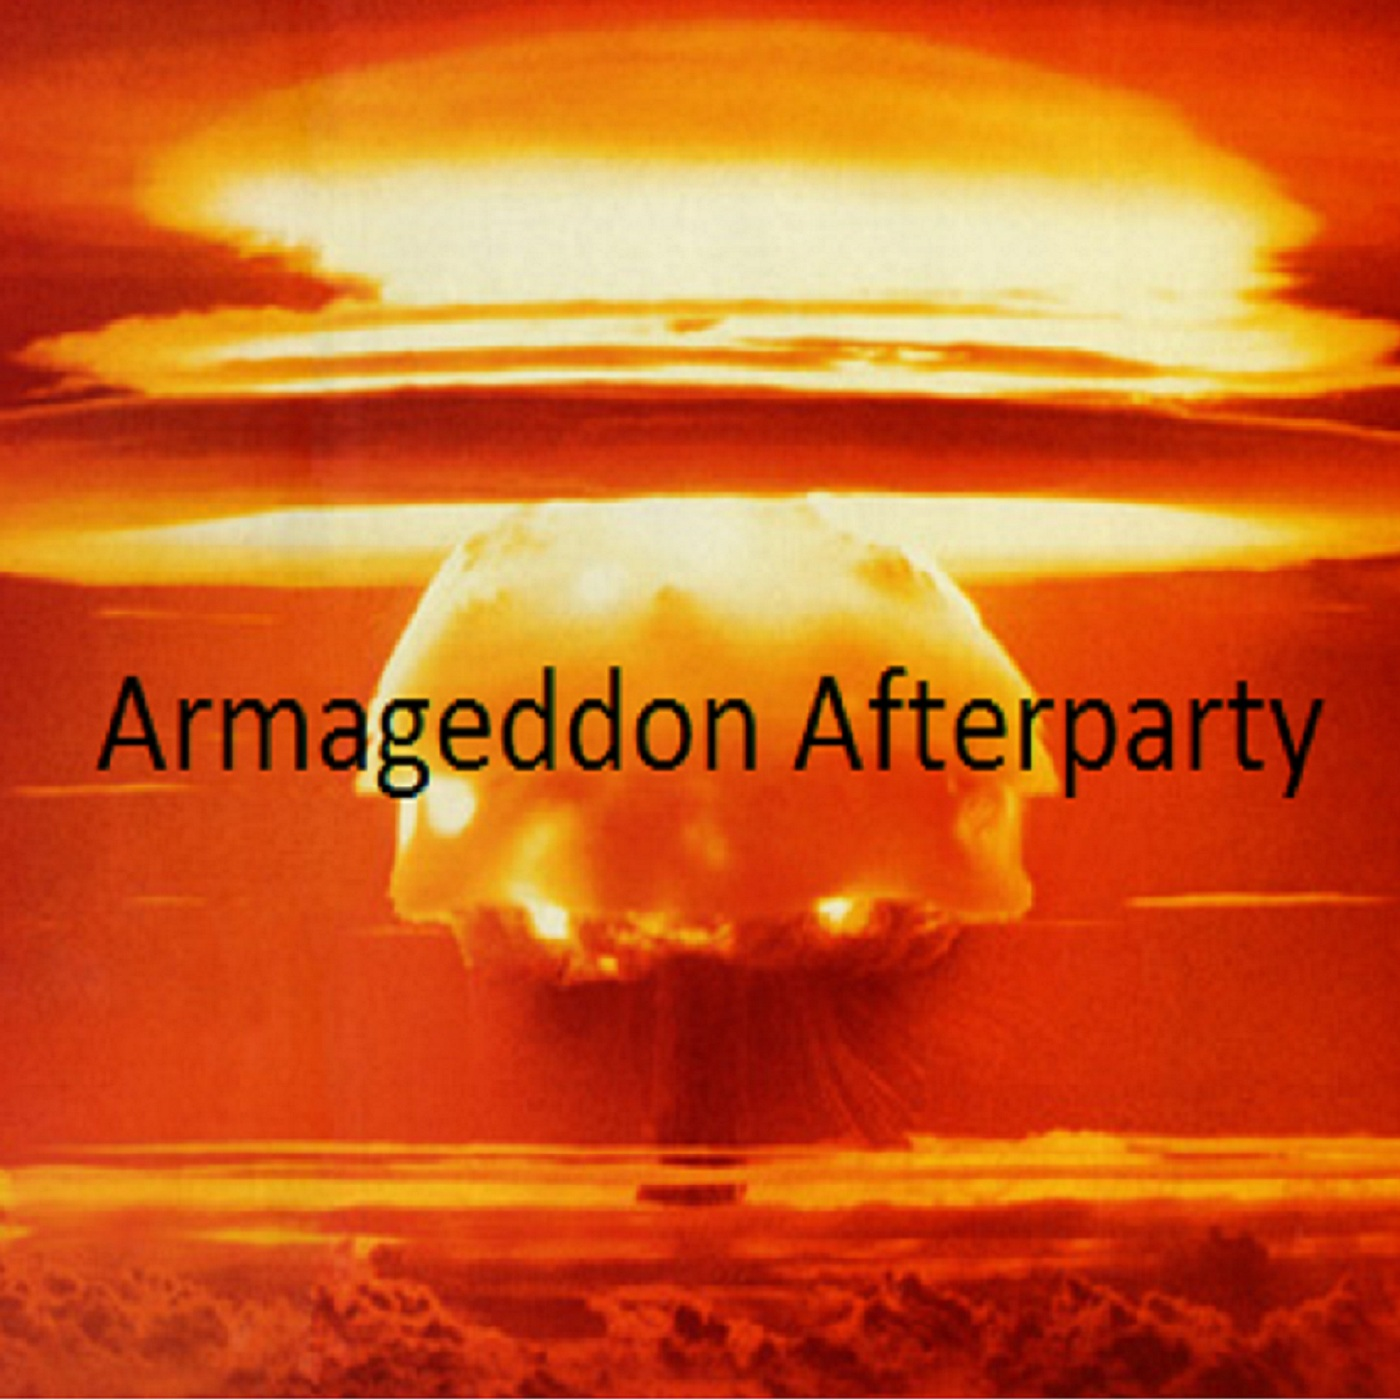 Armageddon Afterparty - Armageddon Afterparty